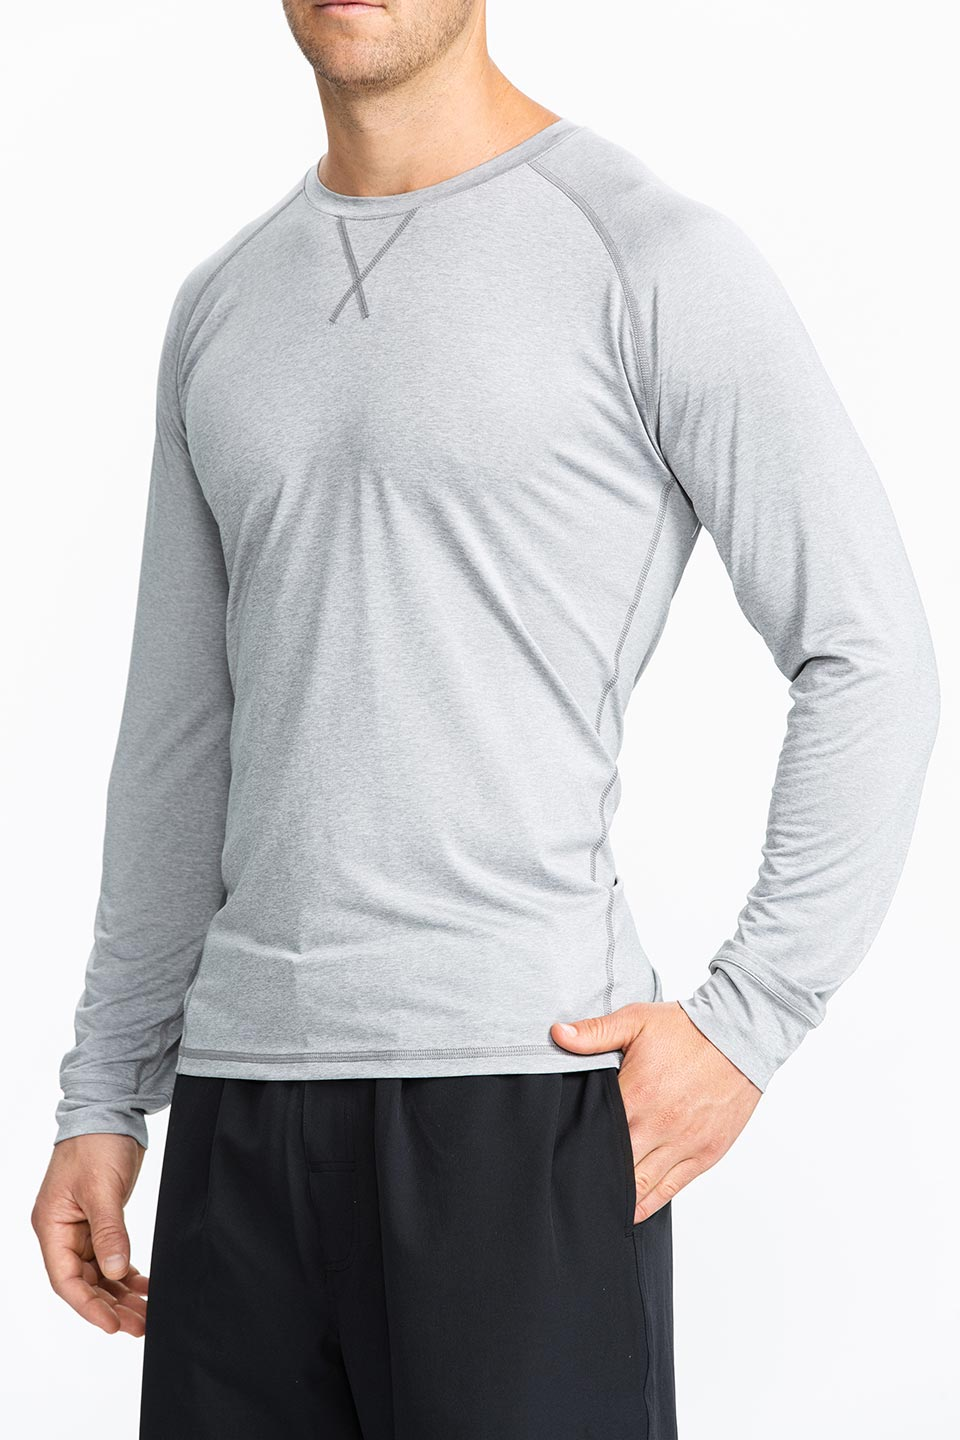 Kalea - Mens Long Sleeve Performance Under Shirt - Gray